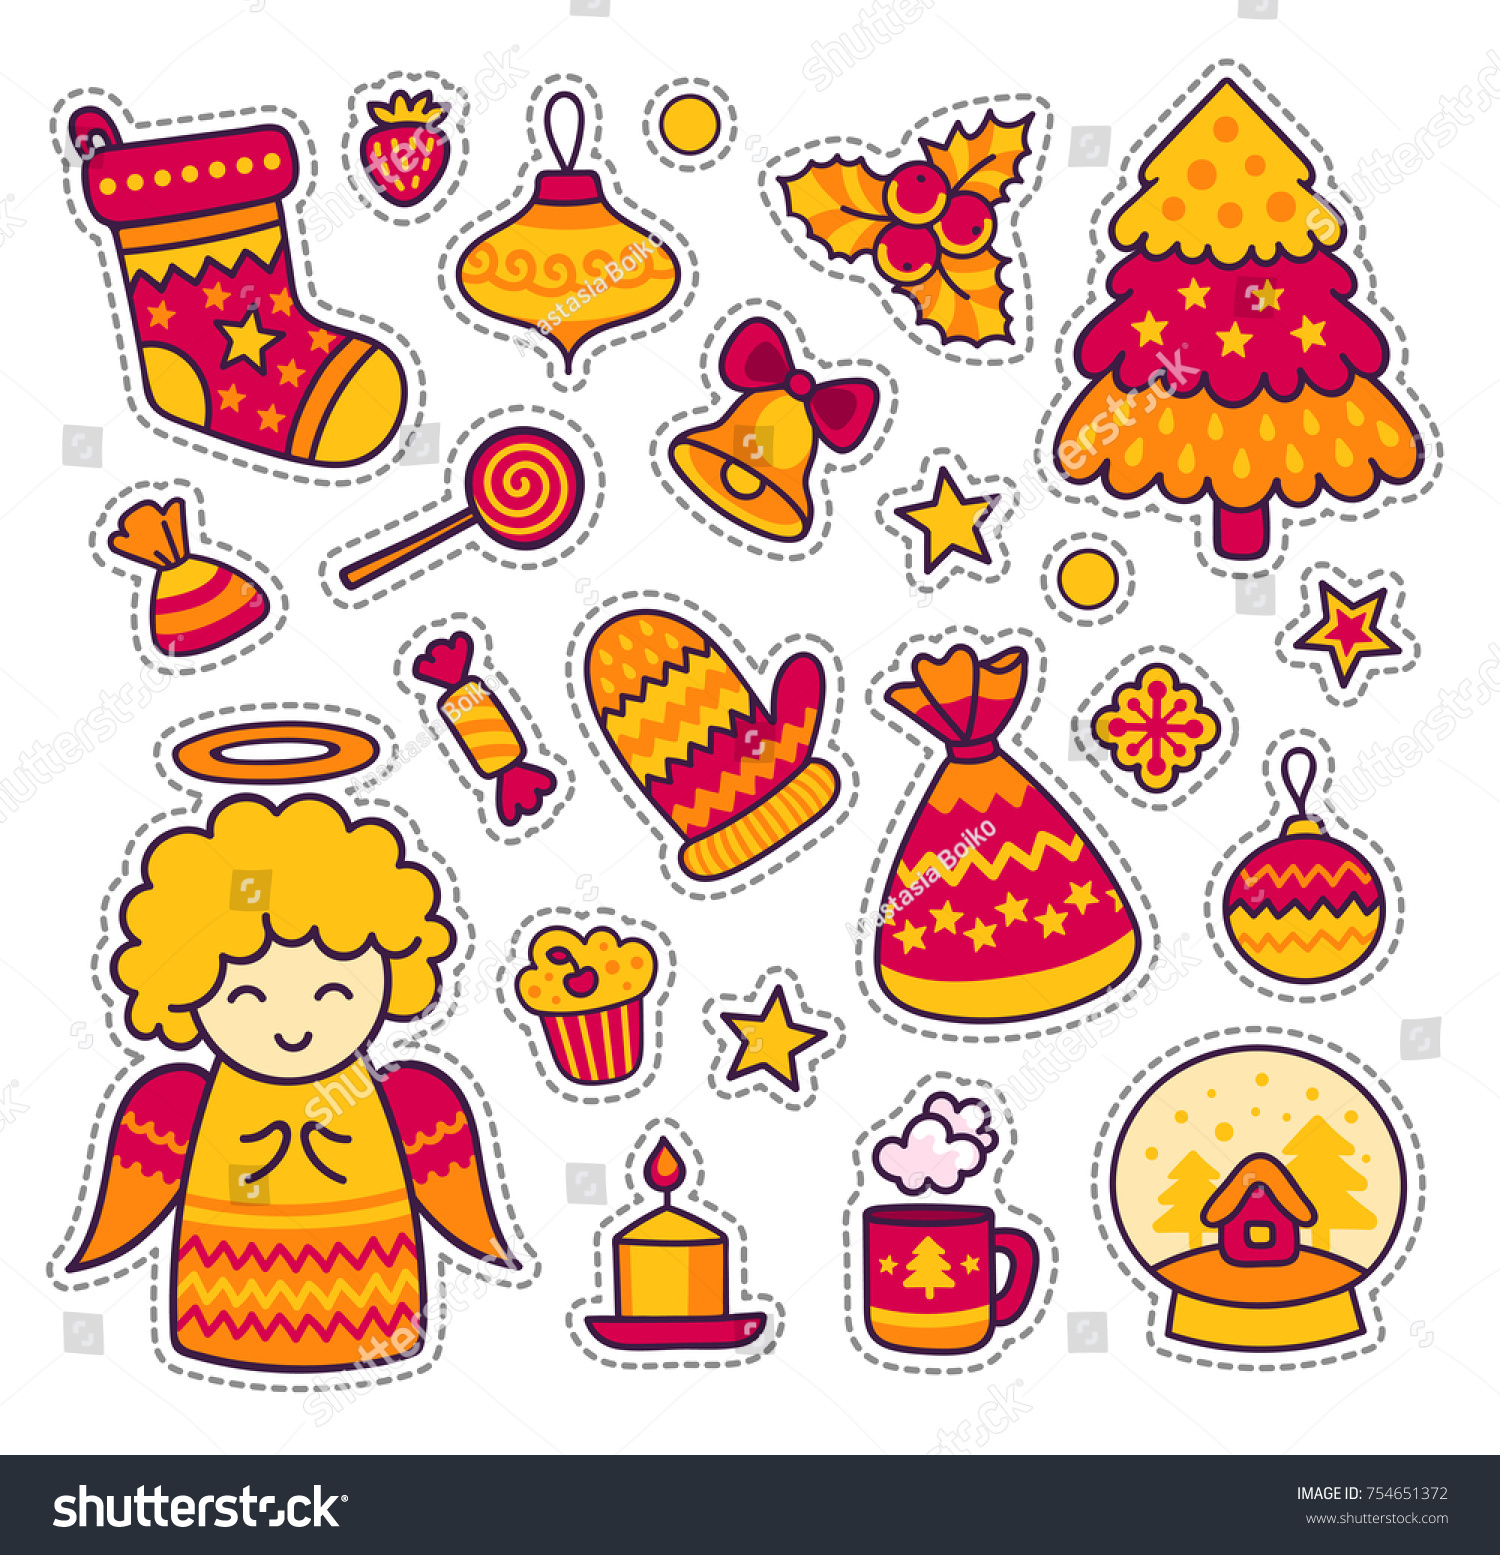 Set of stickers patches badges pins prints cute cartoon little angel